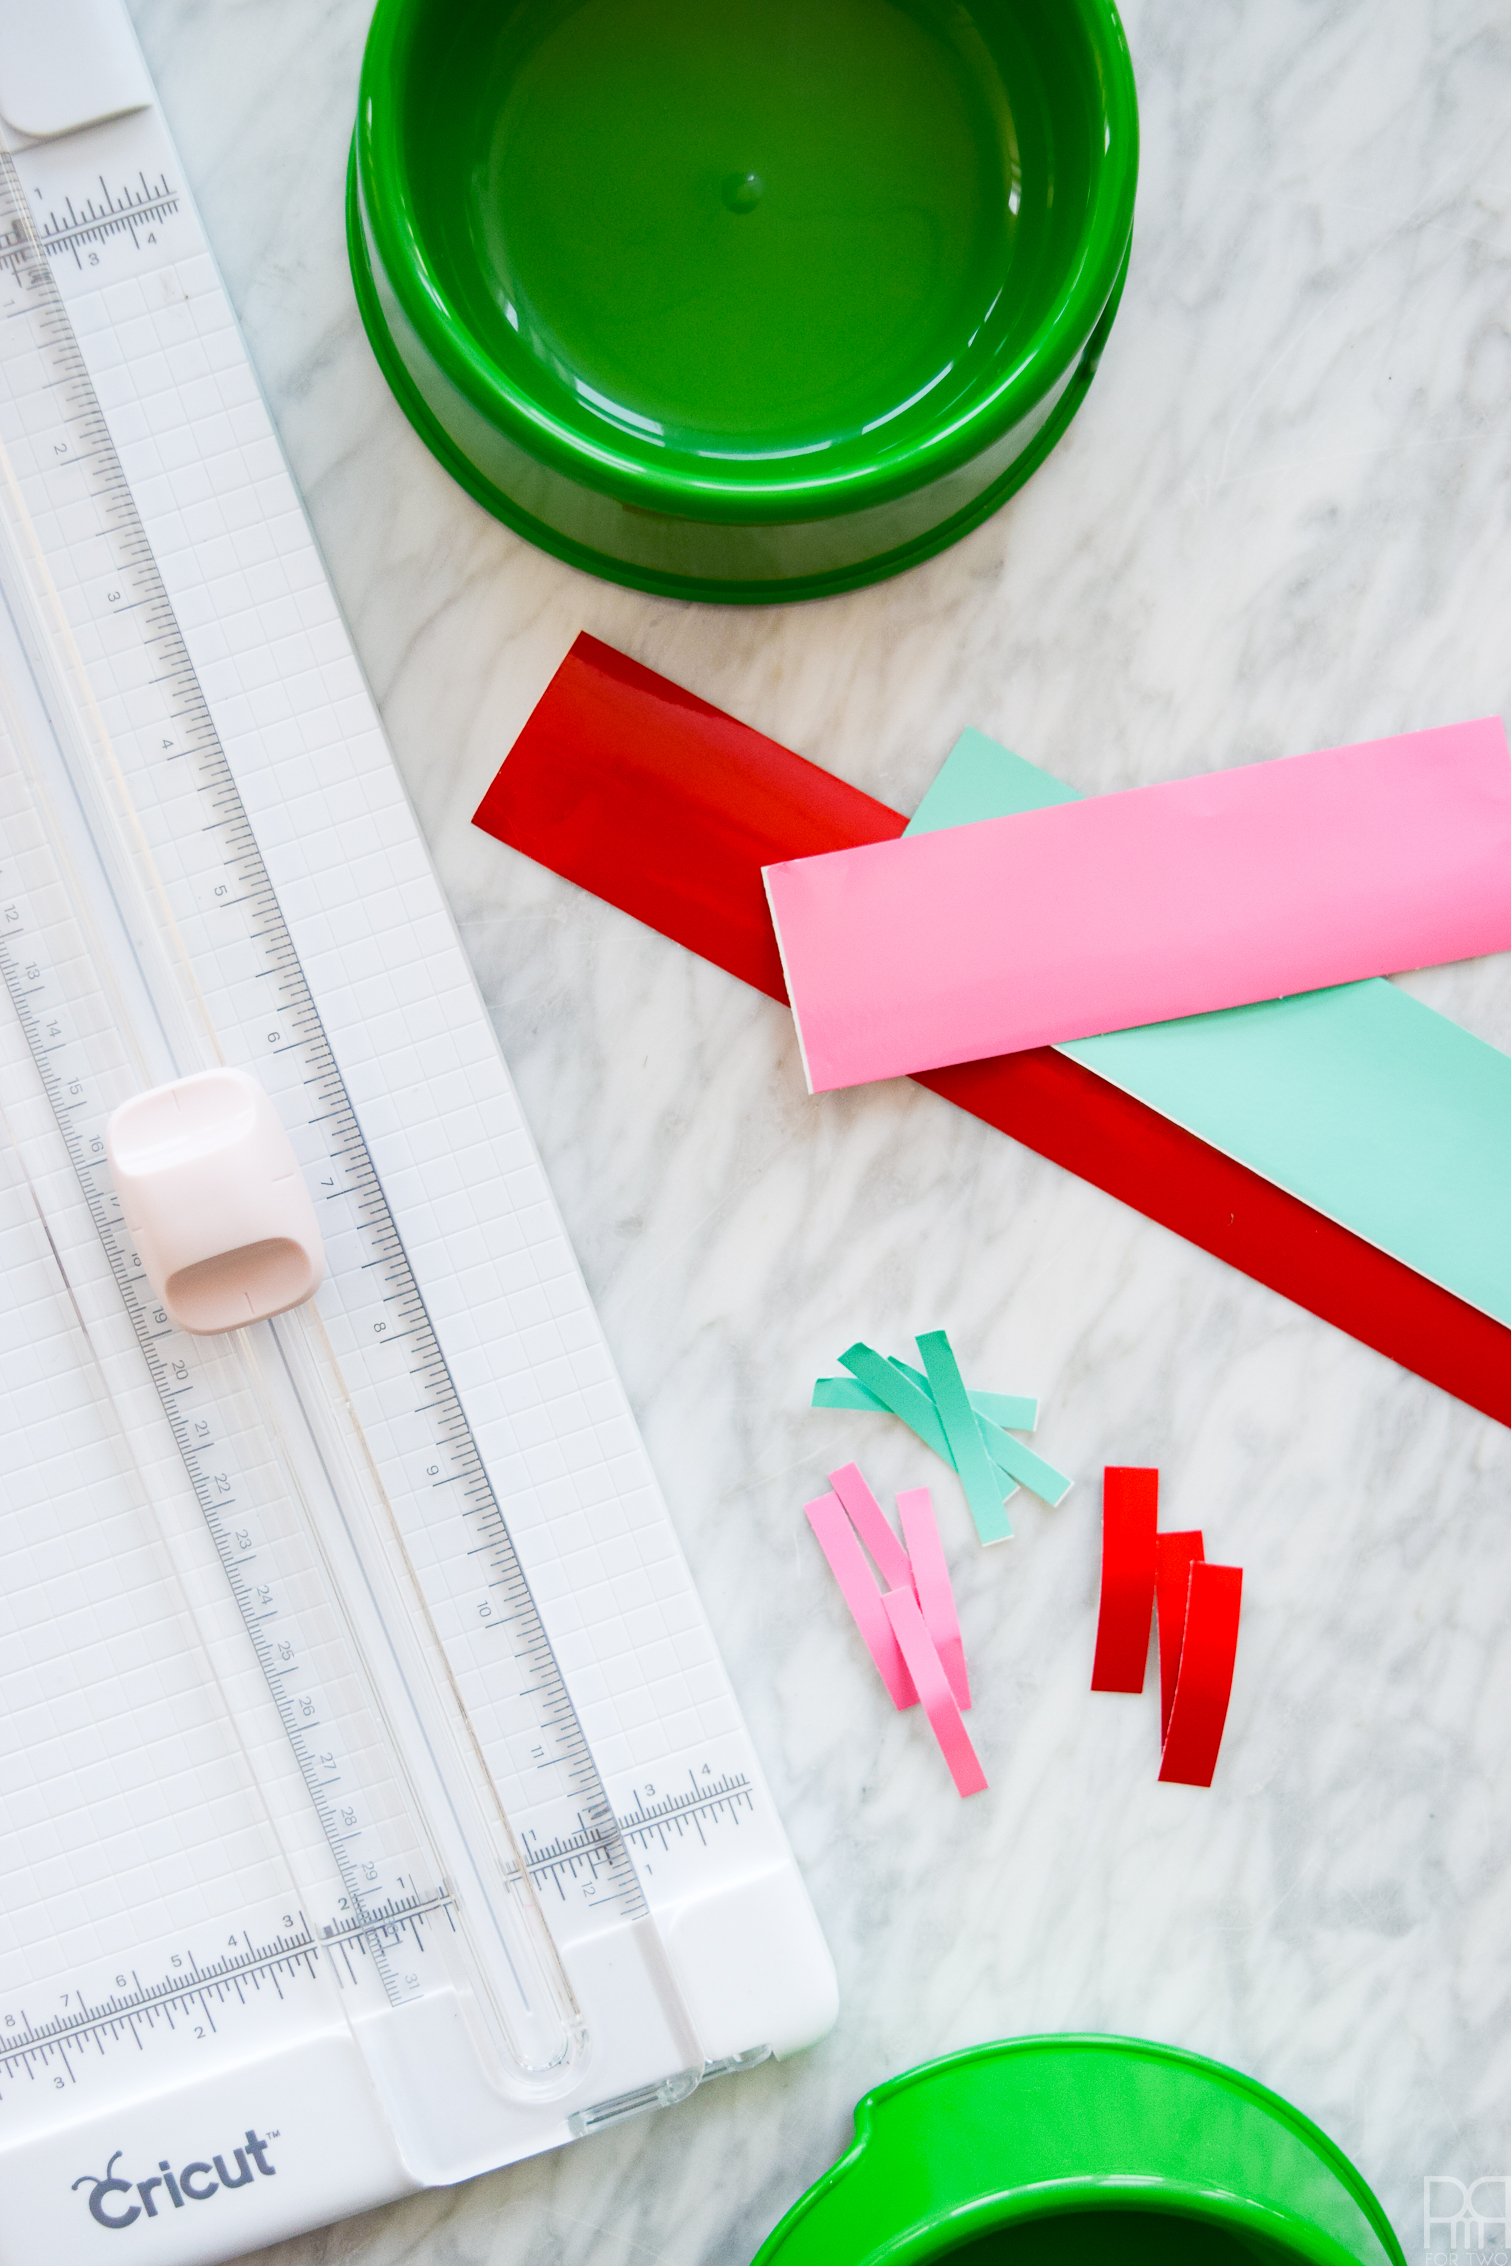 Have you wanted to try out a vinyl project, but don't have a machine? Try this simple DIY using a paper cutter, vinyl scraps, and a little bit of diy.